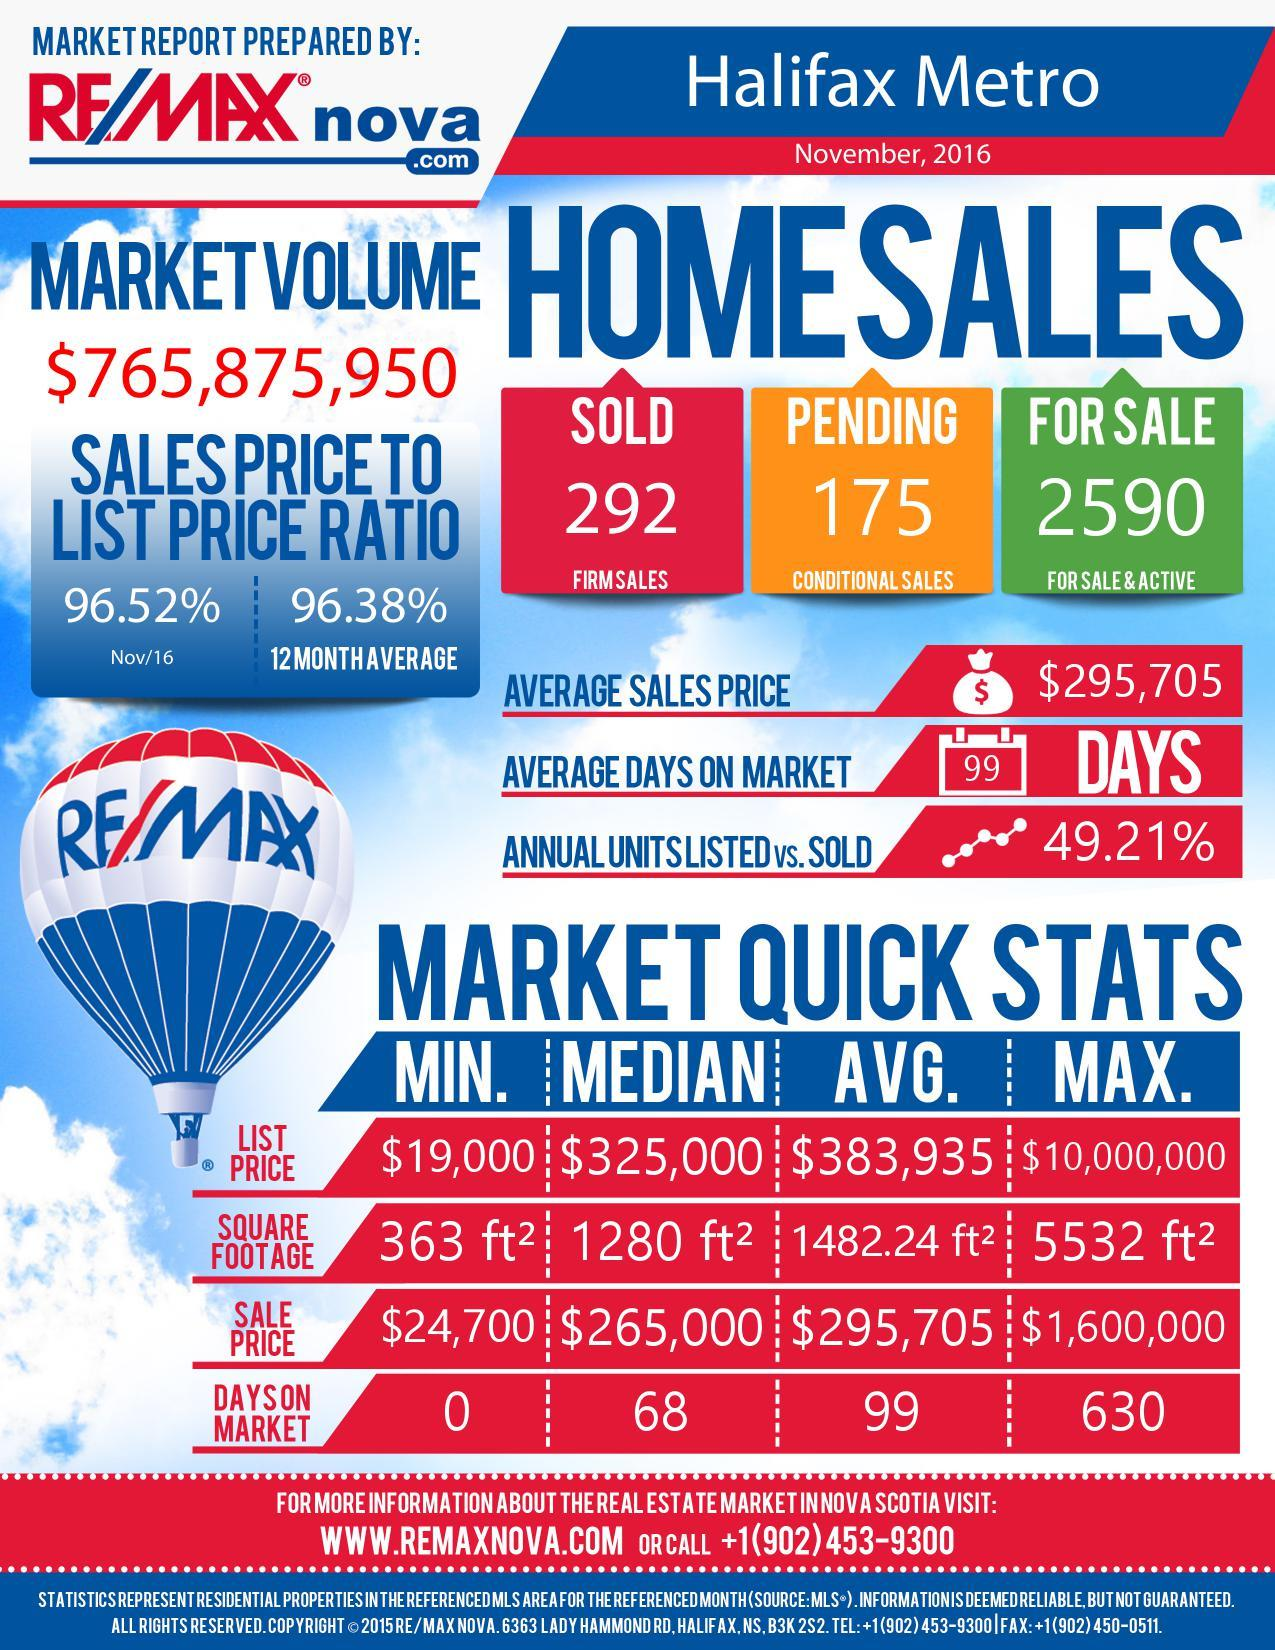 RE/MAX nova Halifax real estate market report